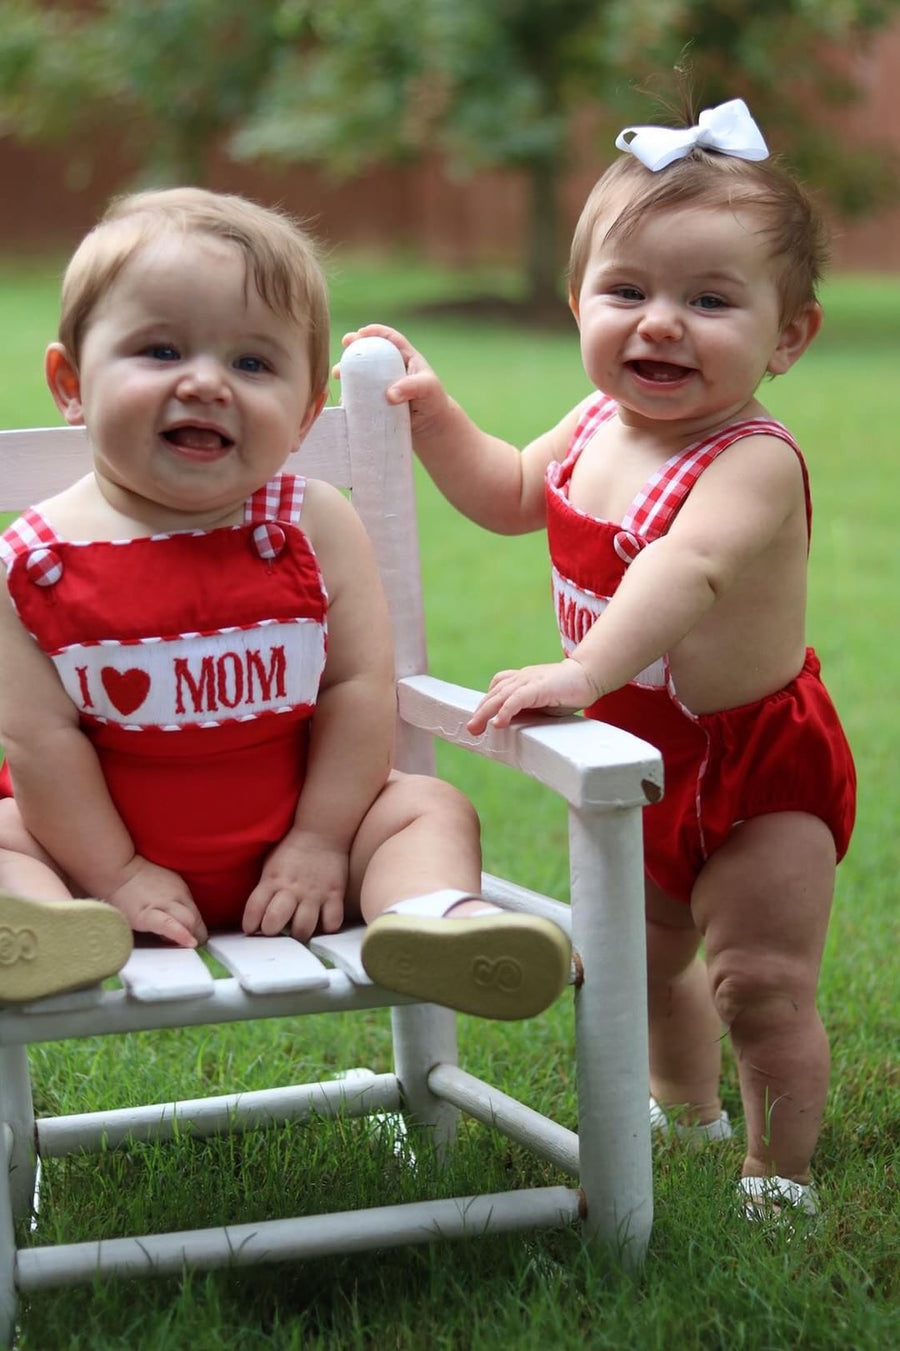 """I LOVE MOM"" UNISEX SUNSUIT"